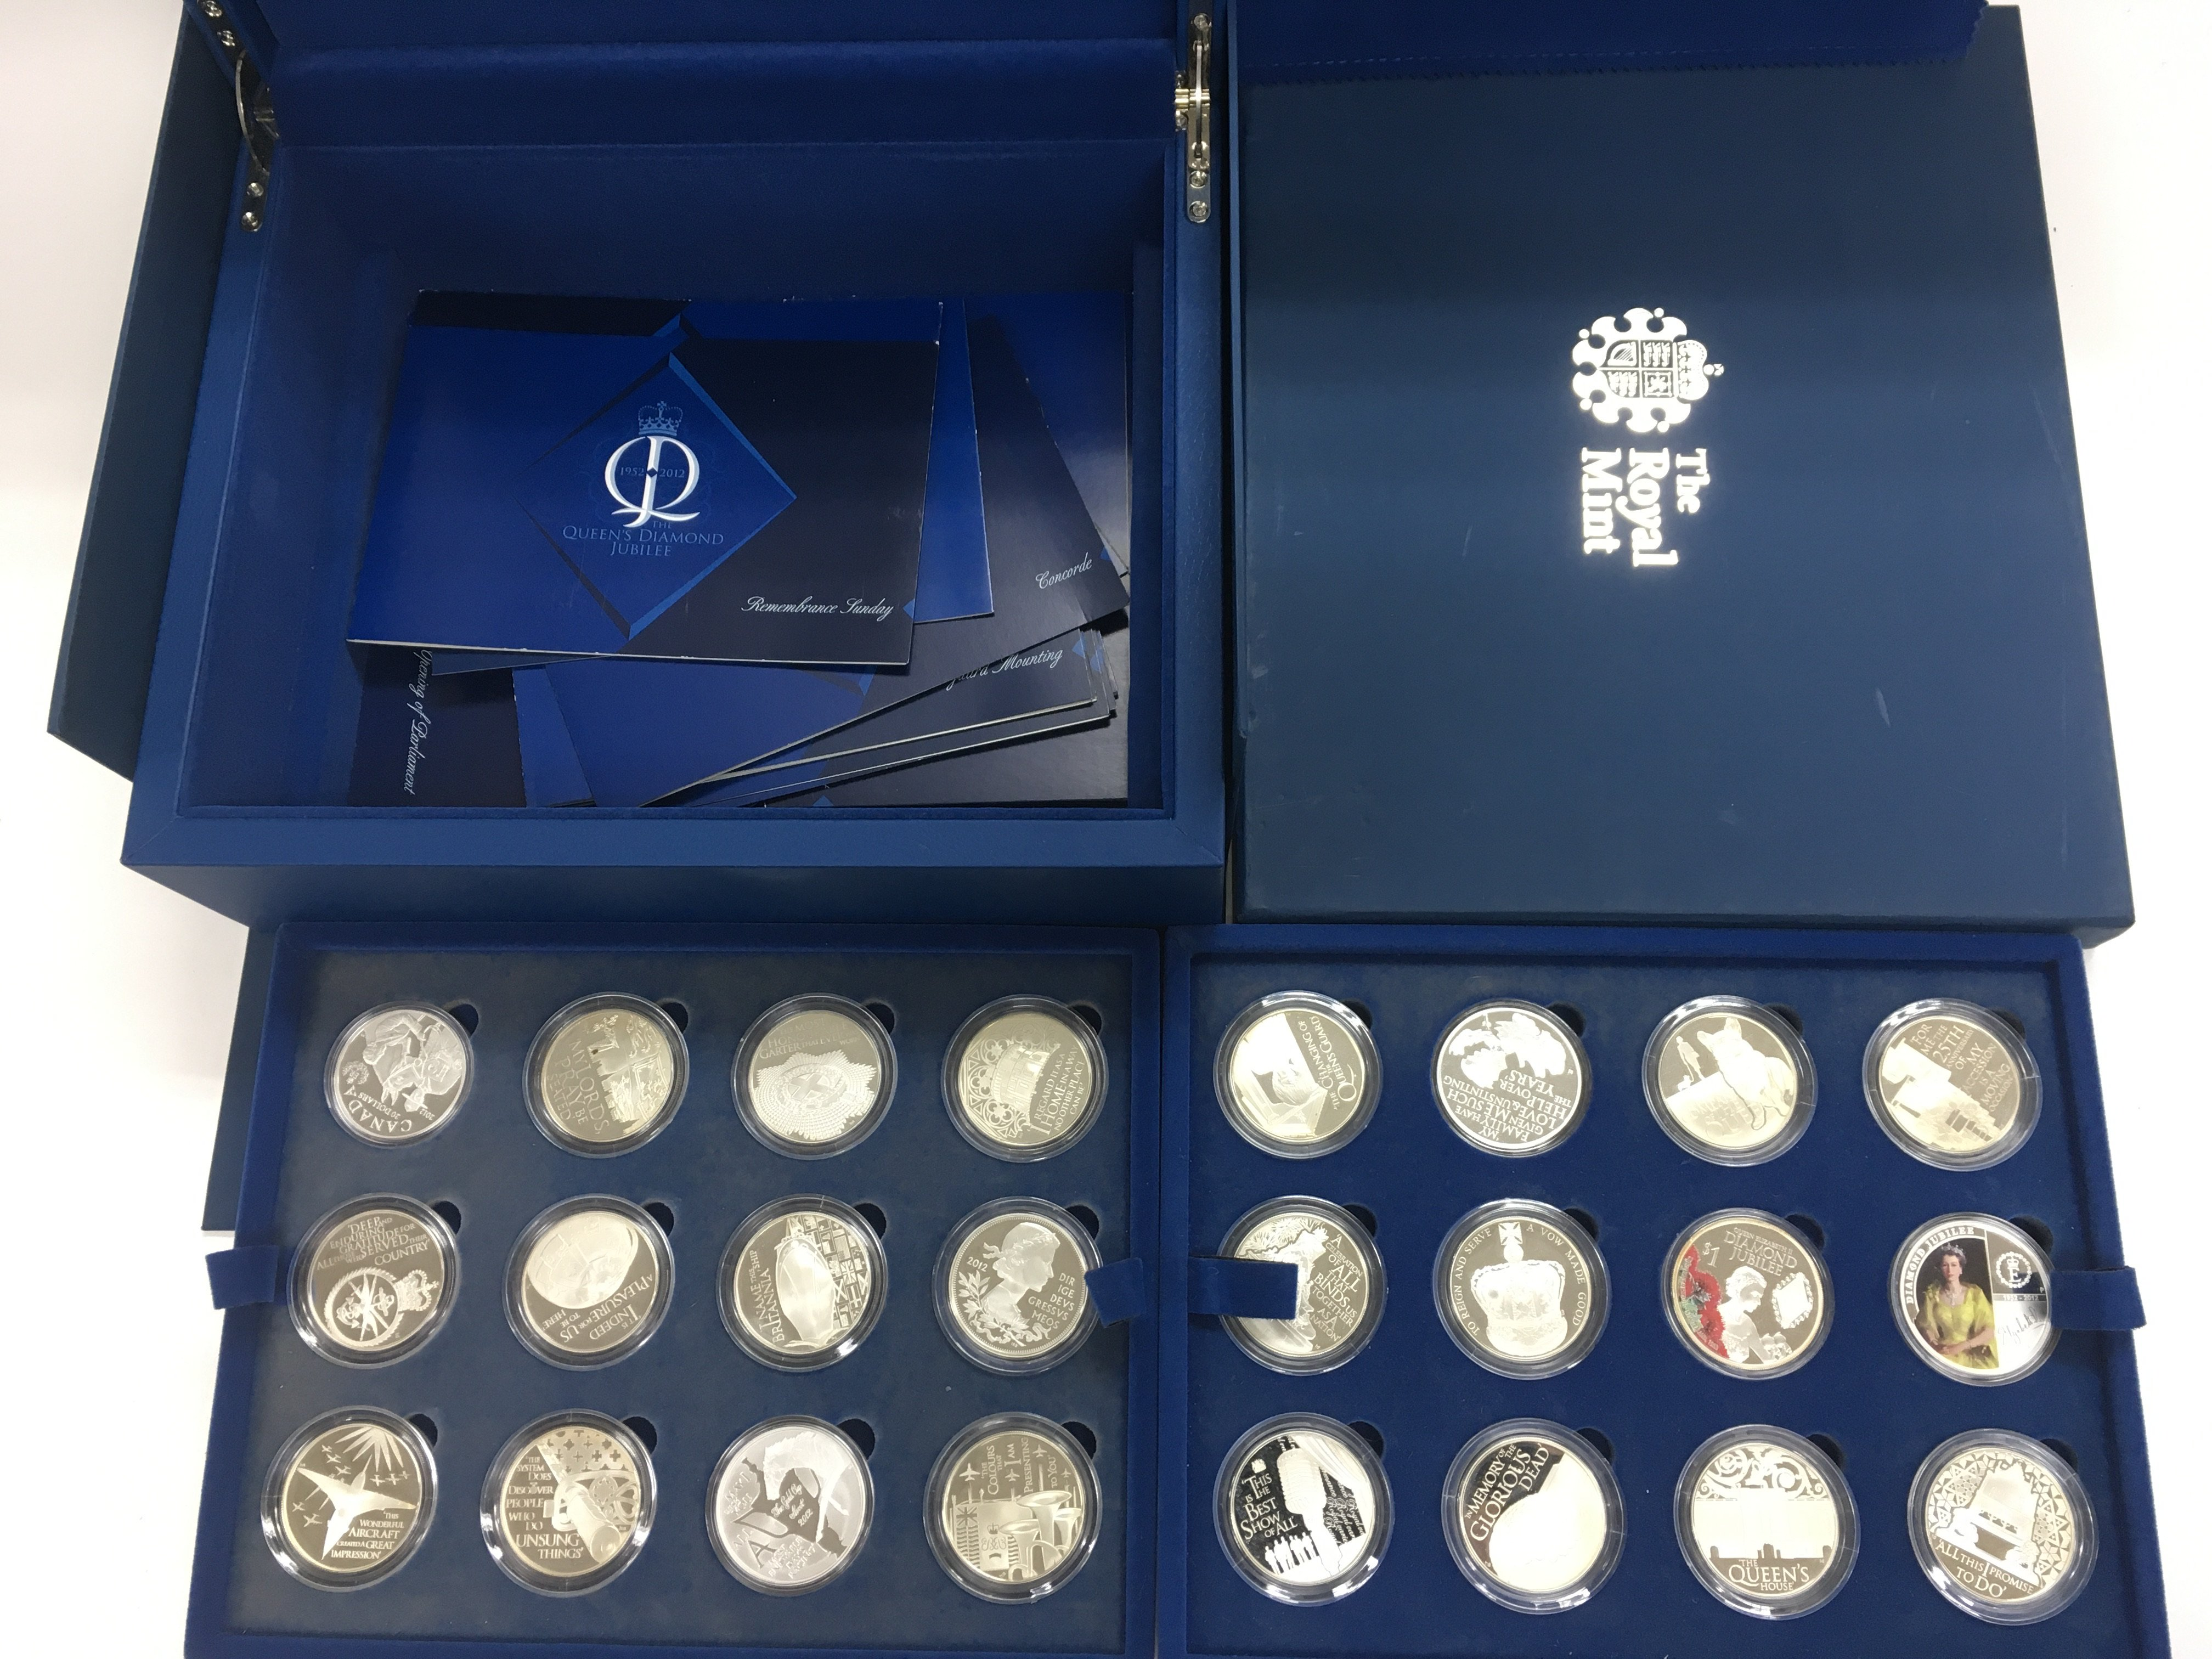 Lot 14 - A boxed Royal Mint Queens Diamond jubilee silver p